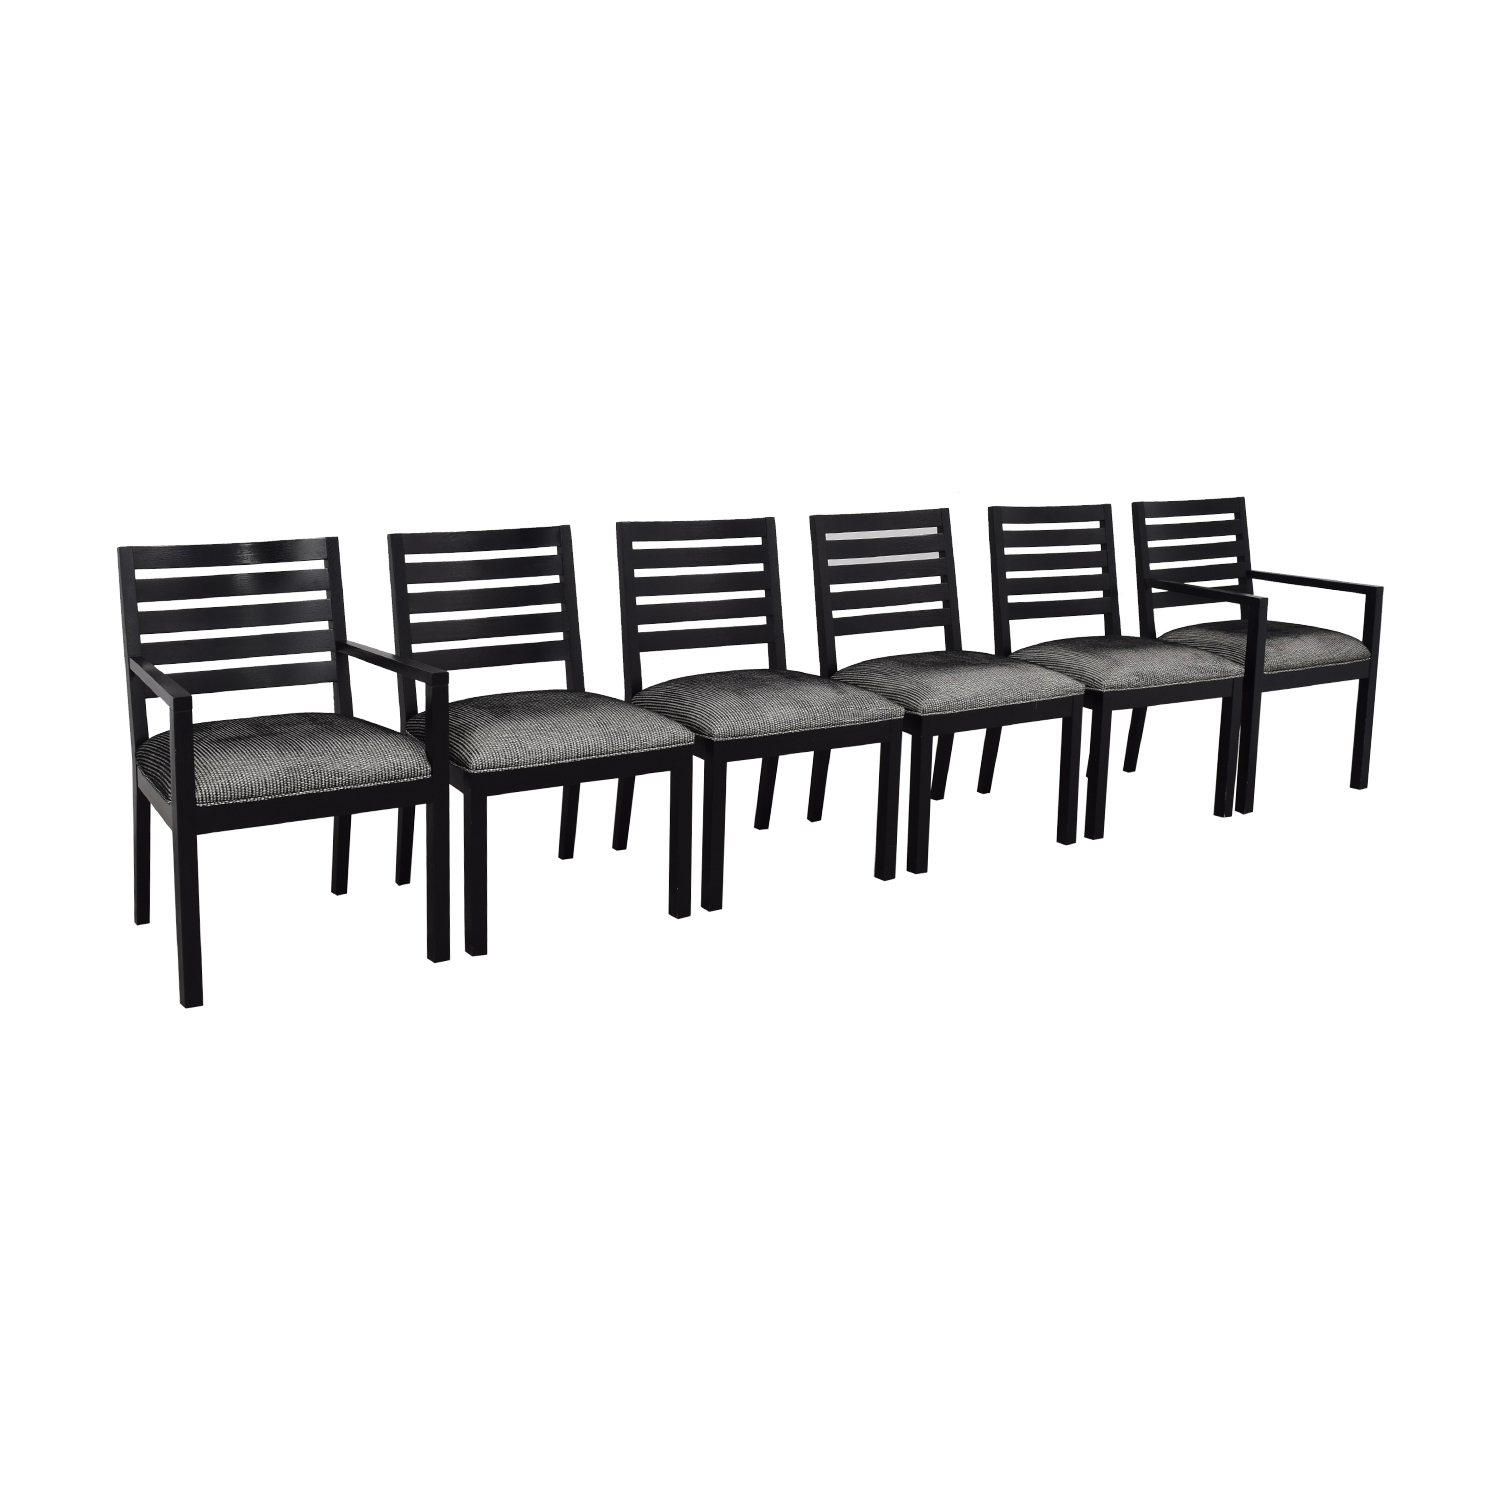 Ethan Allen Horizontal Slat Dining Chairs / Chairs